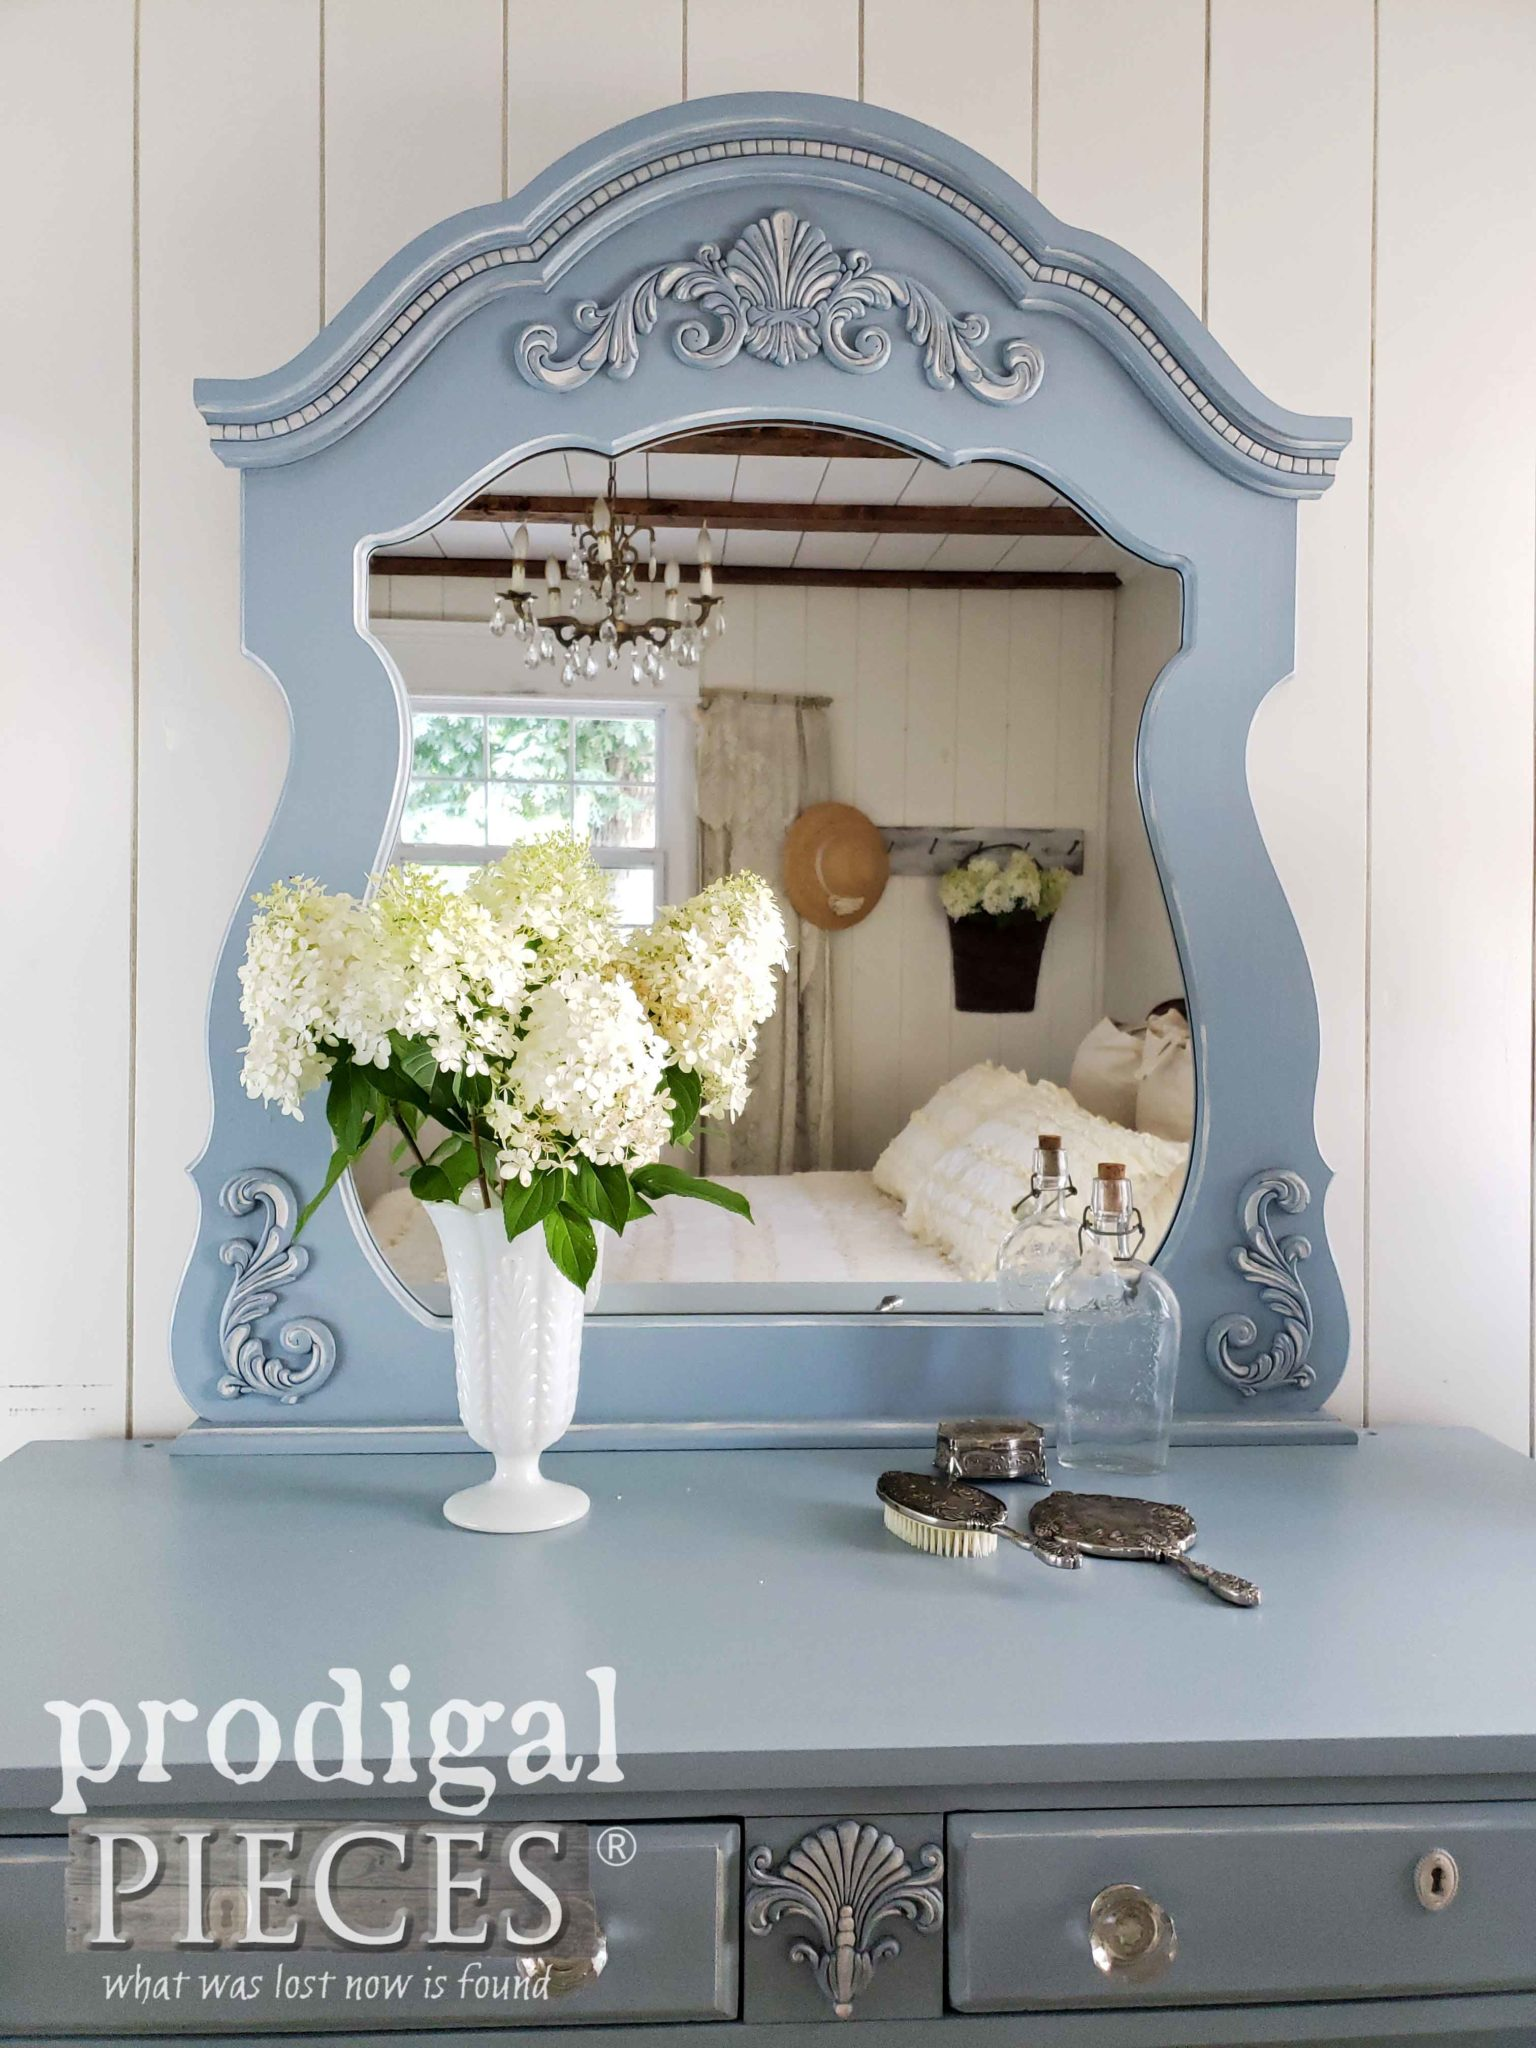 Upcycled Mirror on Antique Dresser by Prodigal Pieces | prodigalpieces.com